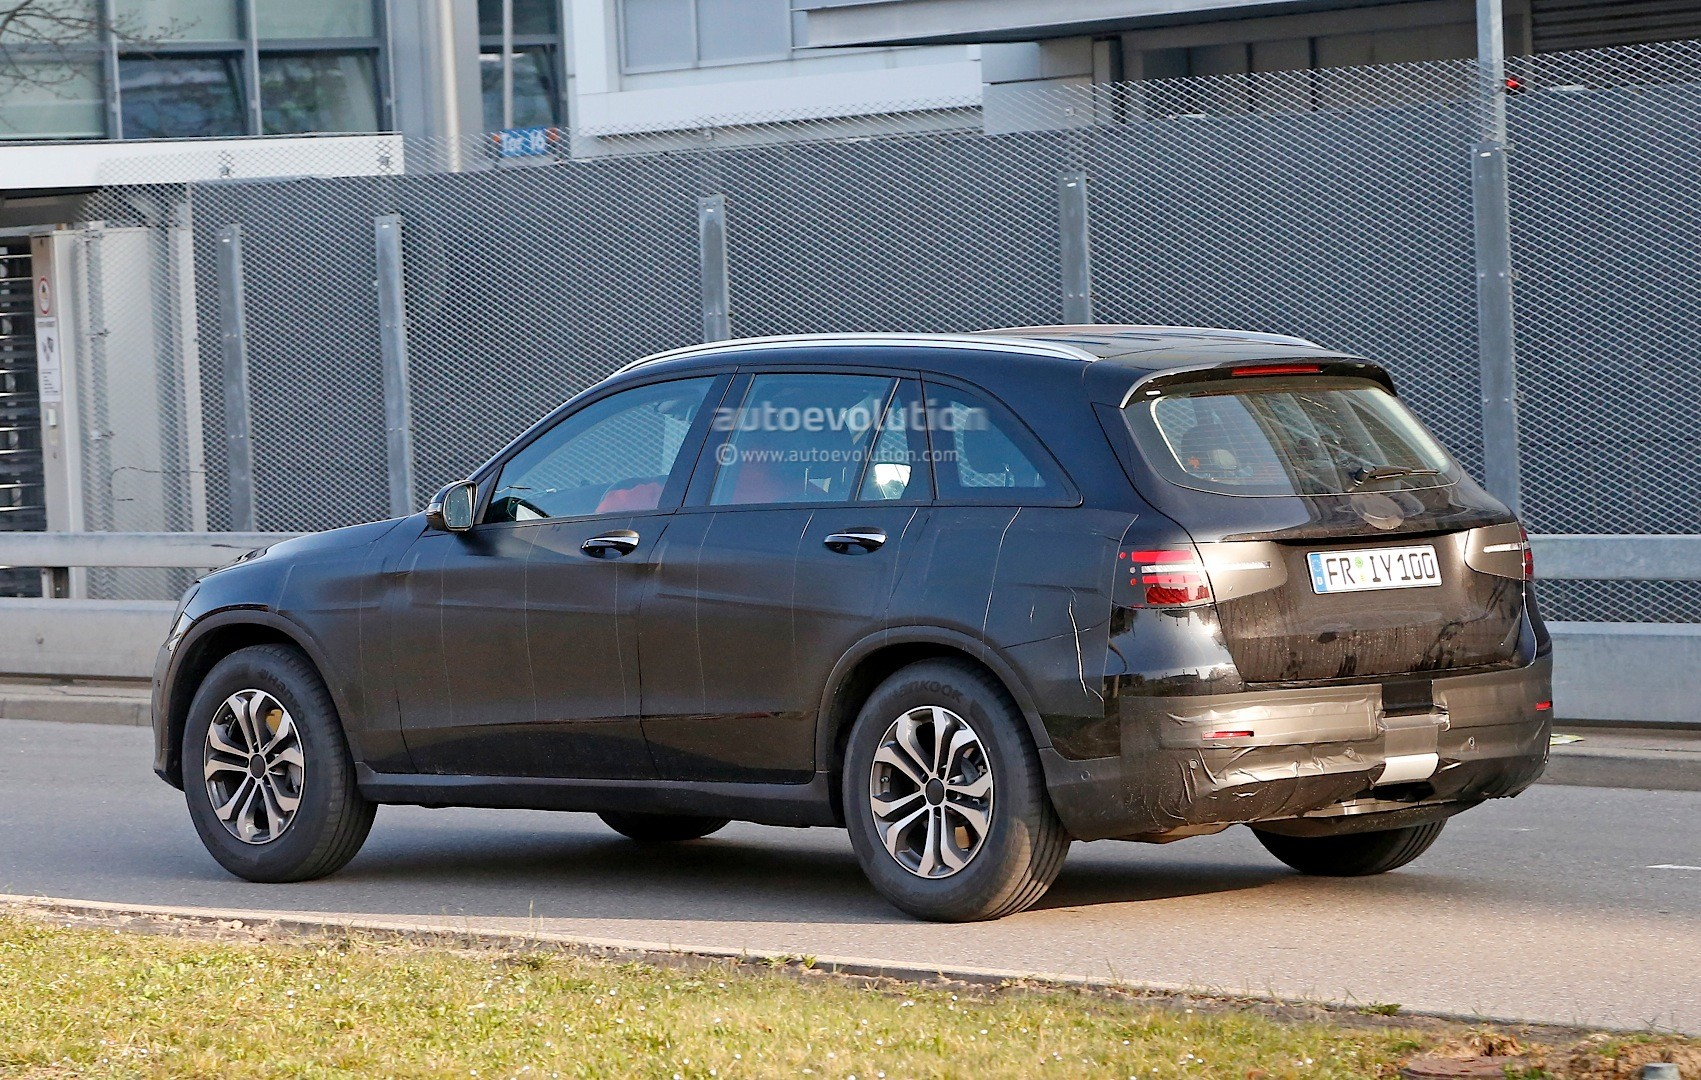 2015 - [Mercedes] GLC (GLK II) [X205] - Page 12 Spied-2016-mercedes-benz-glc-could-be-bigger-than-original-ml-will-debut-on-june-17th_9